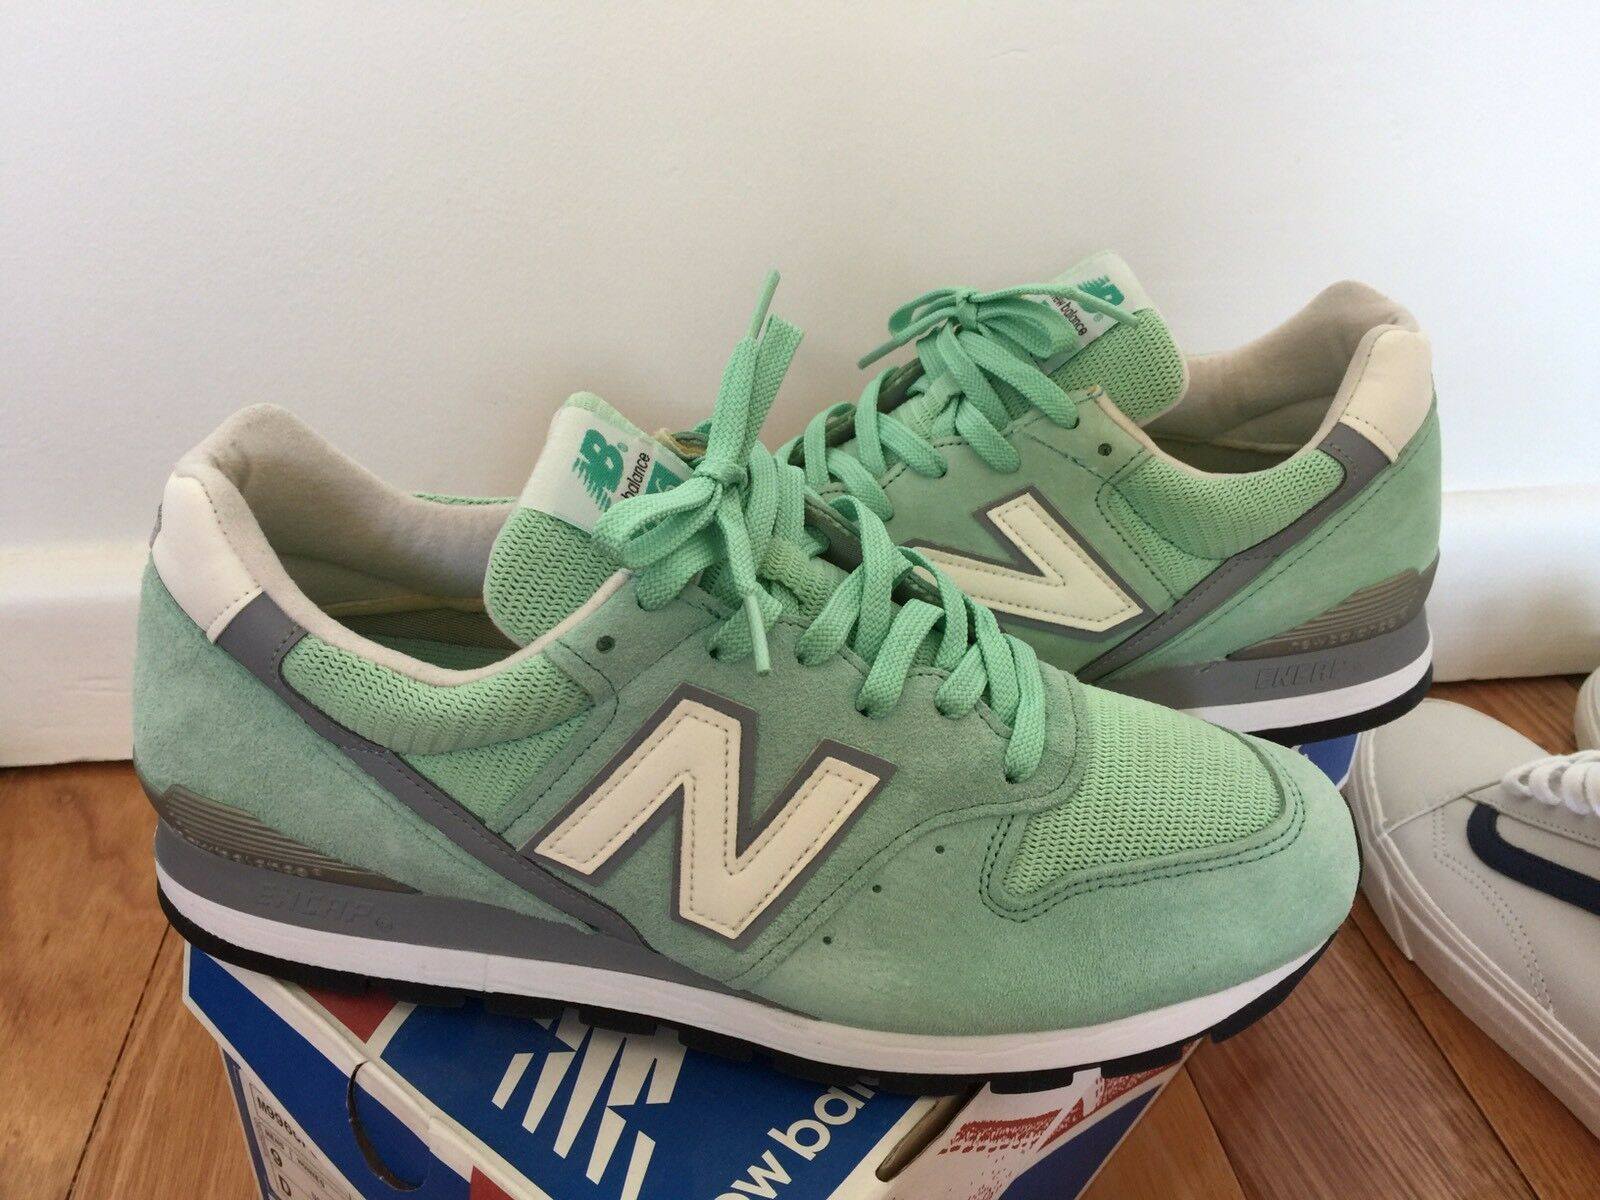 New Balance 996 996 996 Made In USA 9 Green Teal White Grey 998 1500 1400 1600 1300 8f4d83